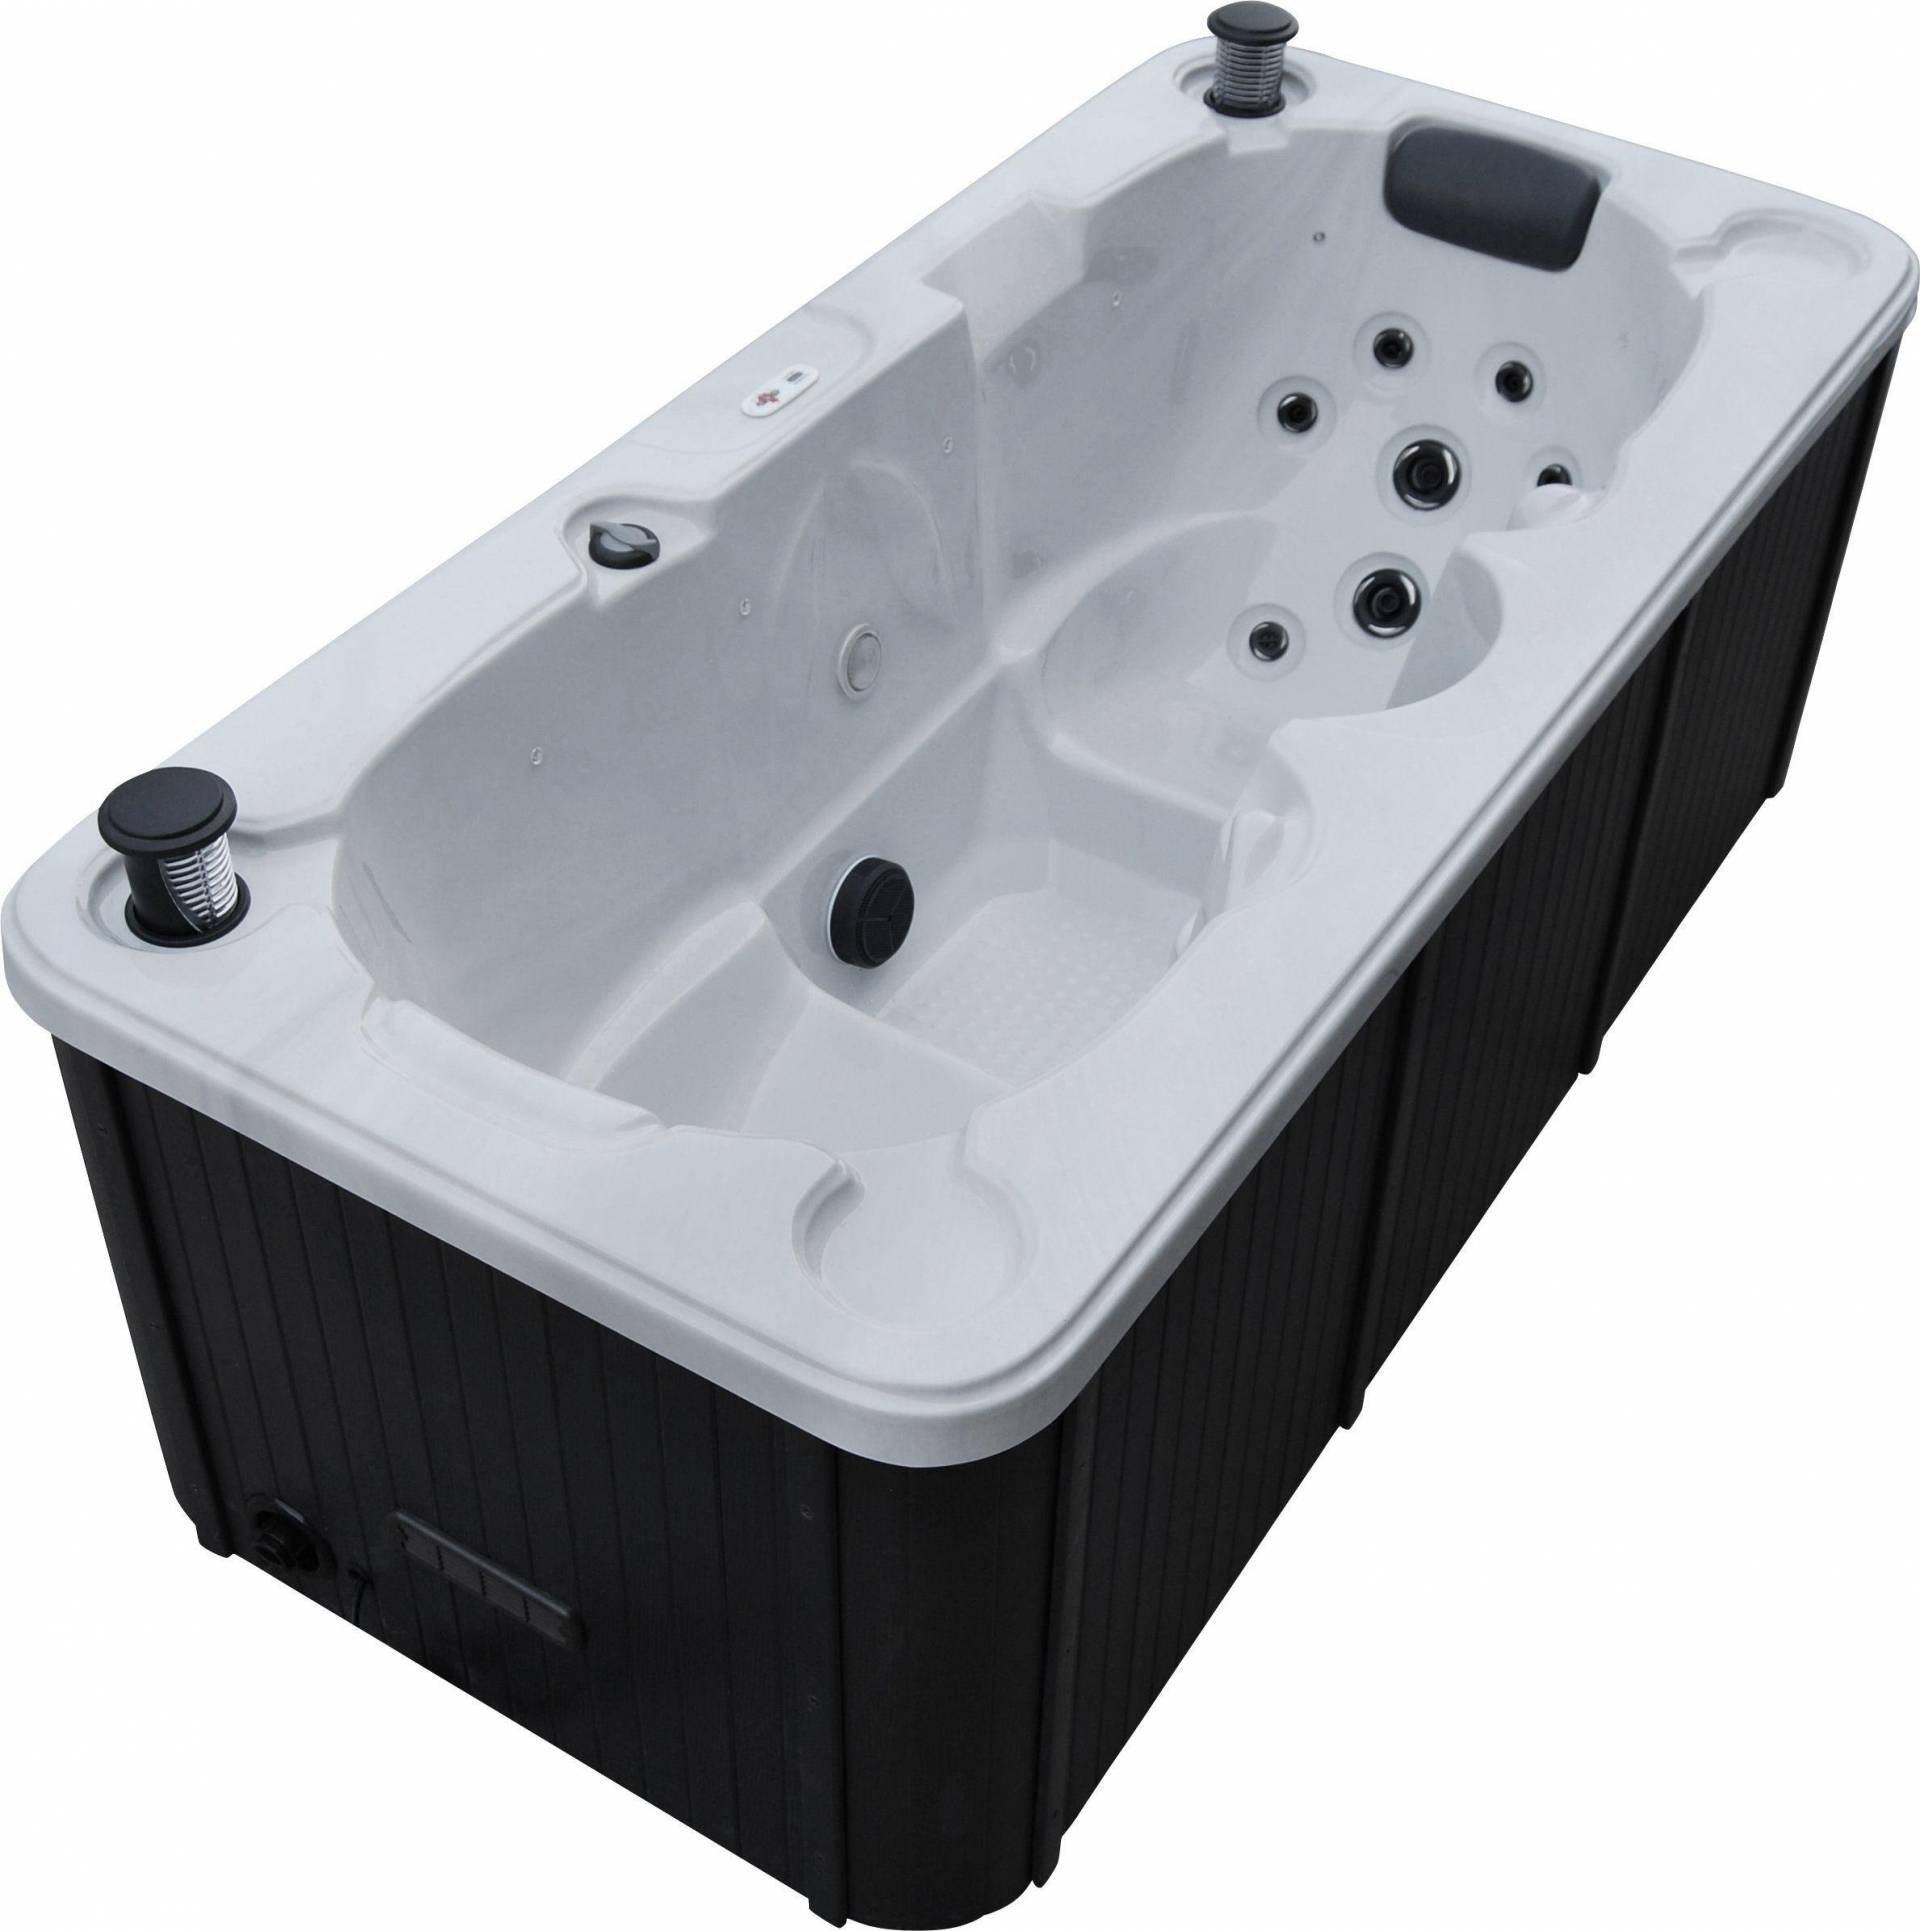 Canadian Spa Co. Yukon Plug & Play 2 Person Hot Tub. from Canadian Spa Company